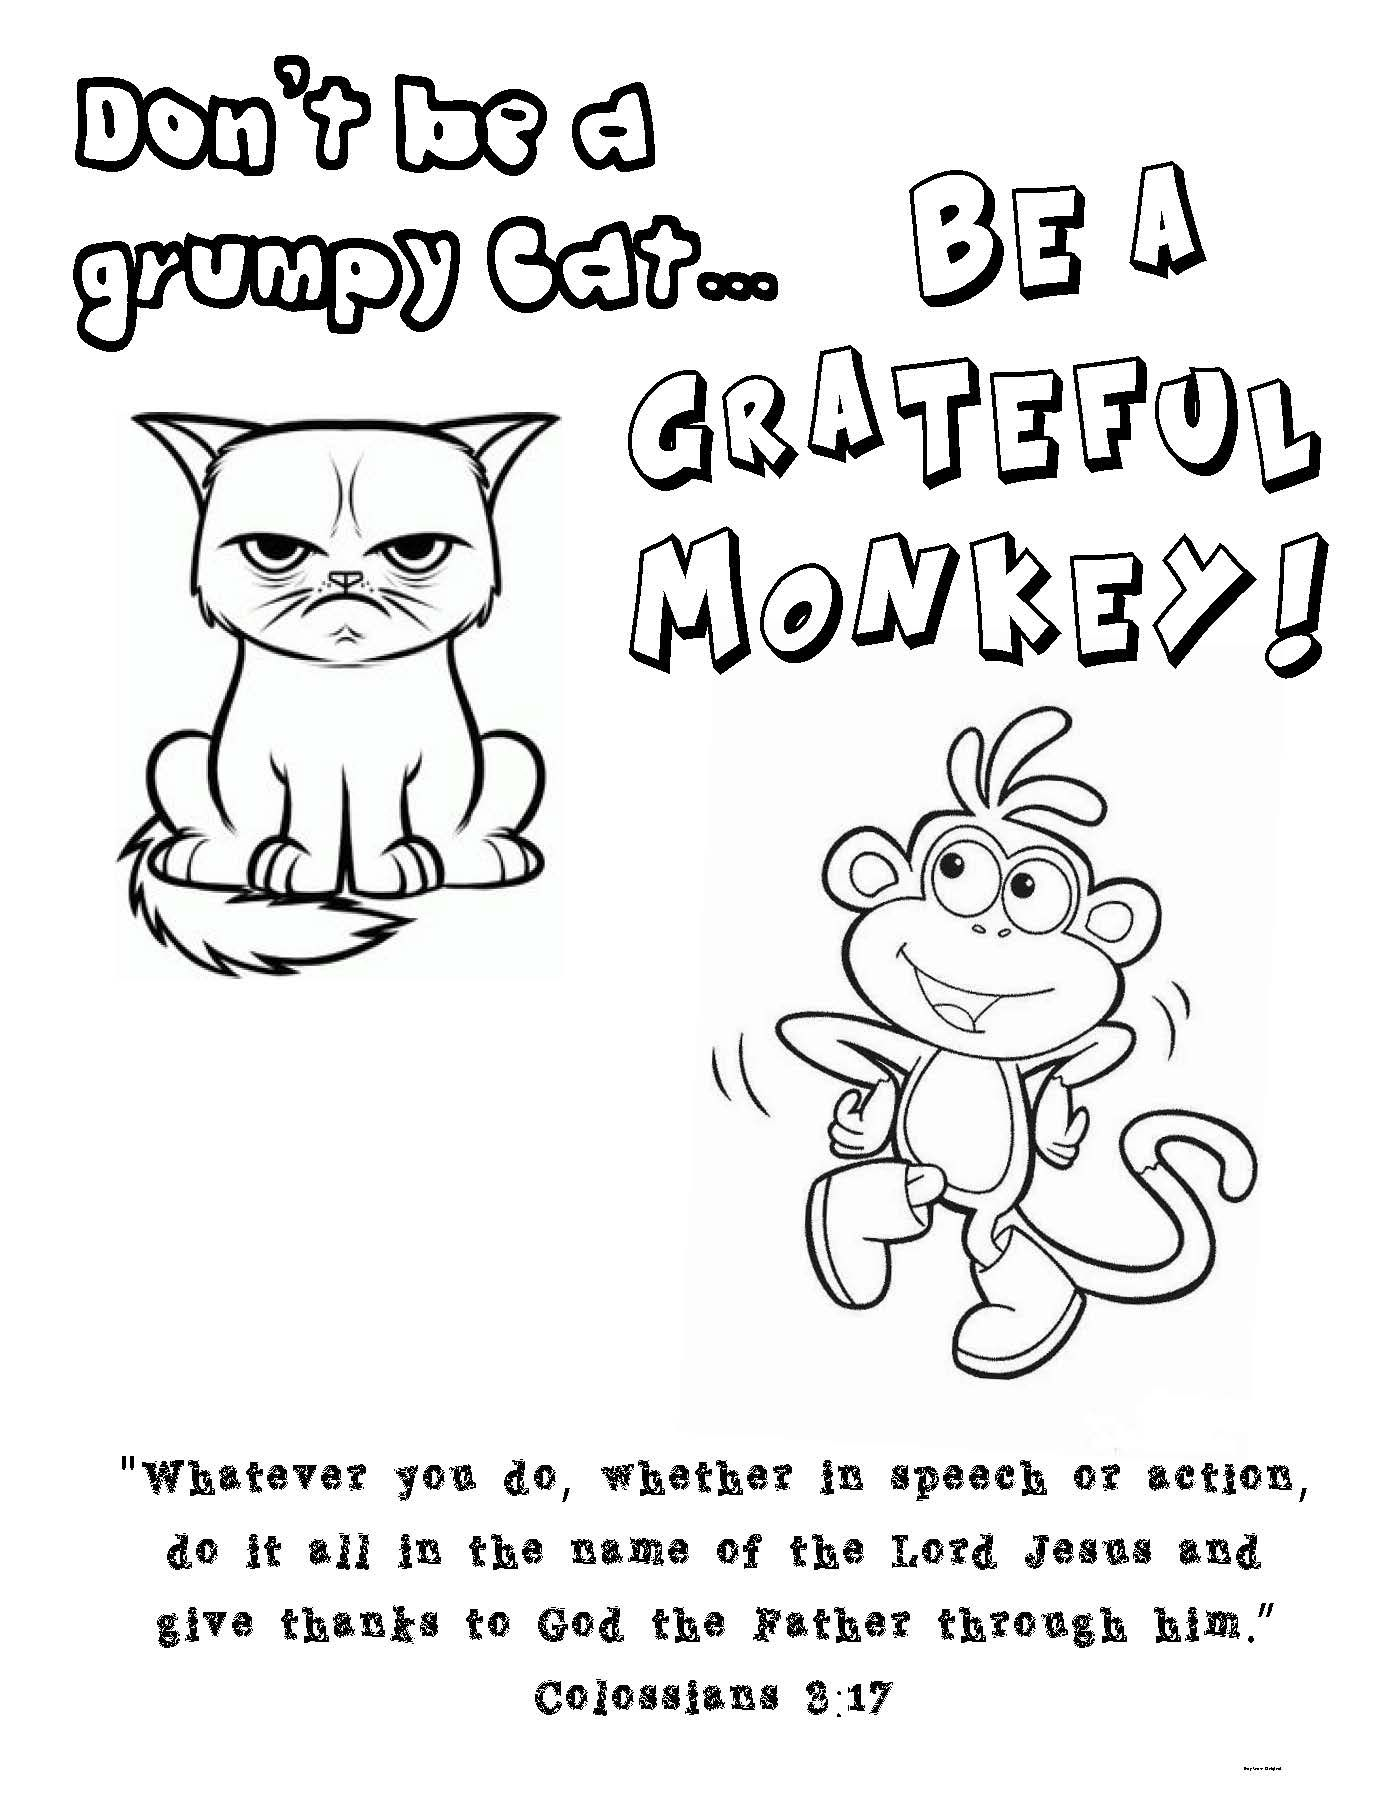 colossians 3 17 coloring page grumpy cat boots from dora kid u0027s